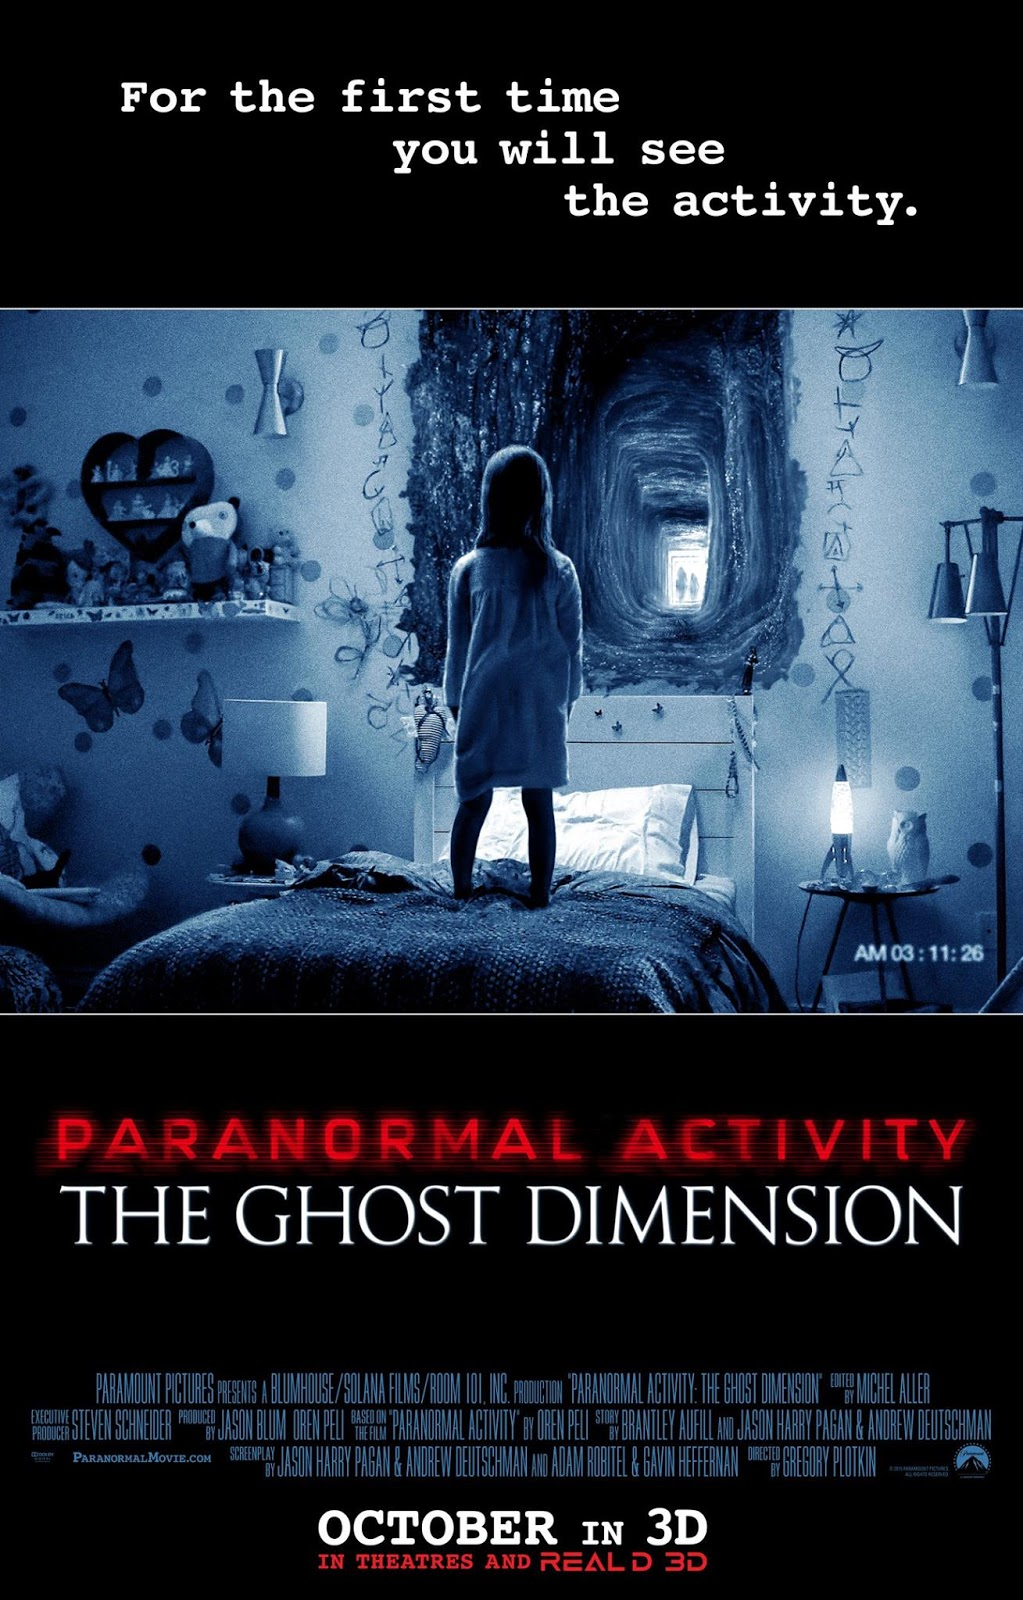 PARANORMAL ACTIVITY THE GHOST DIMENSION (2015) THEATRICAL CUT เรียลลิตี้ขนหัวลุก มิติปีศาจ